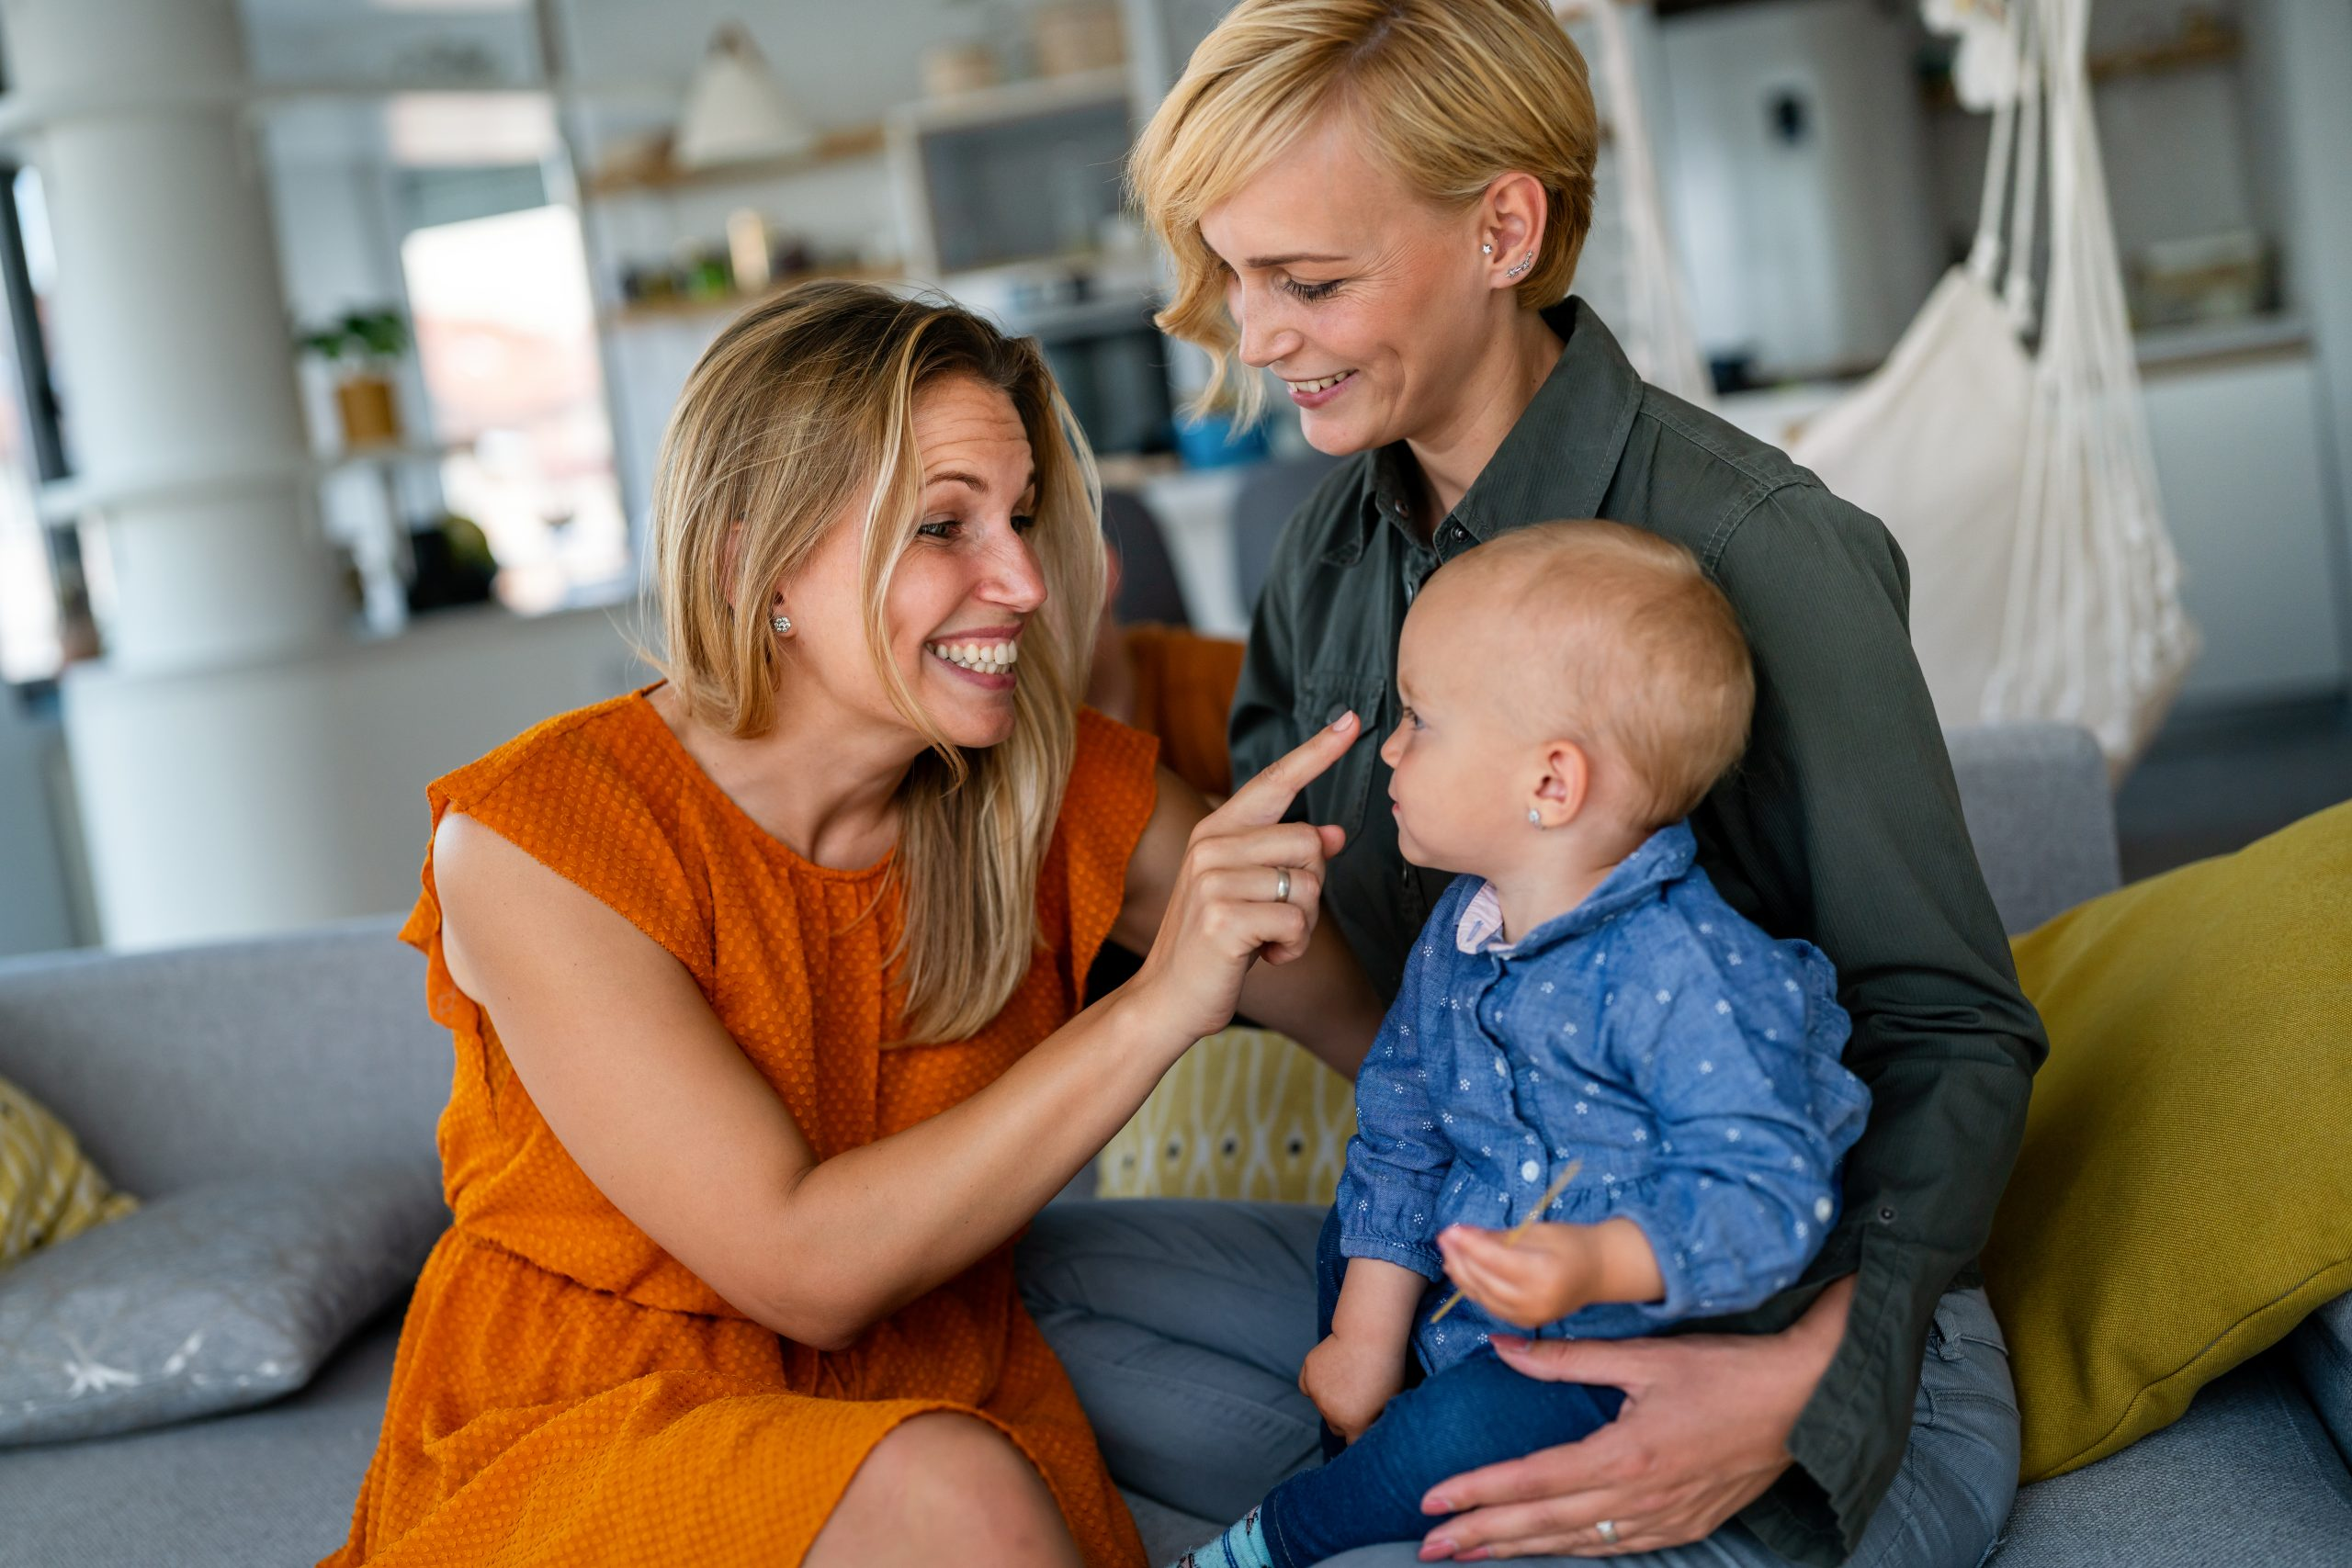 Happy lesbian couple with little girl at home after IVF family building